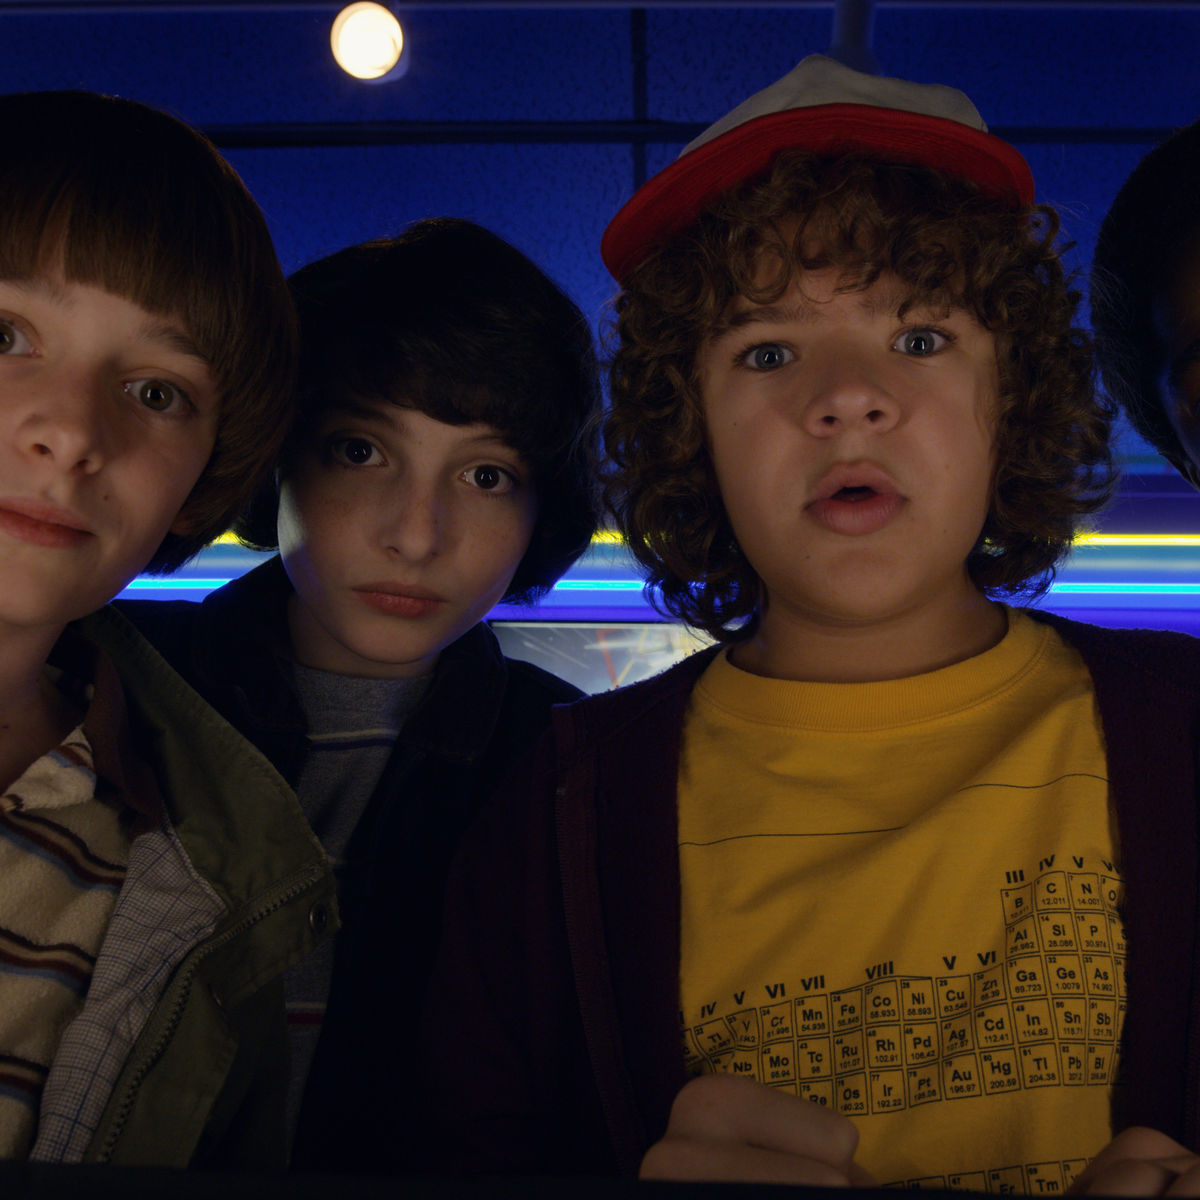 'Stranger Things' Season 3 to premiere on July 4